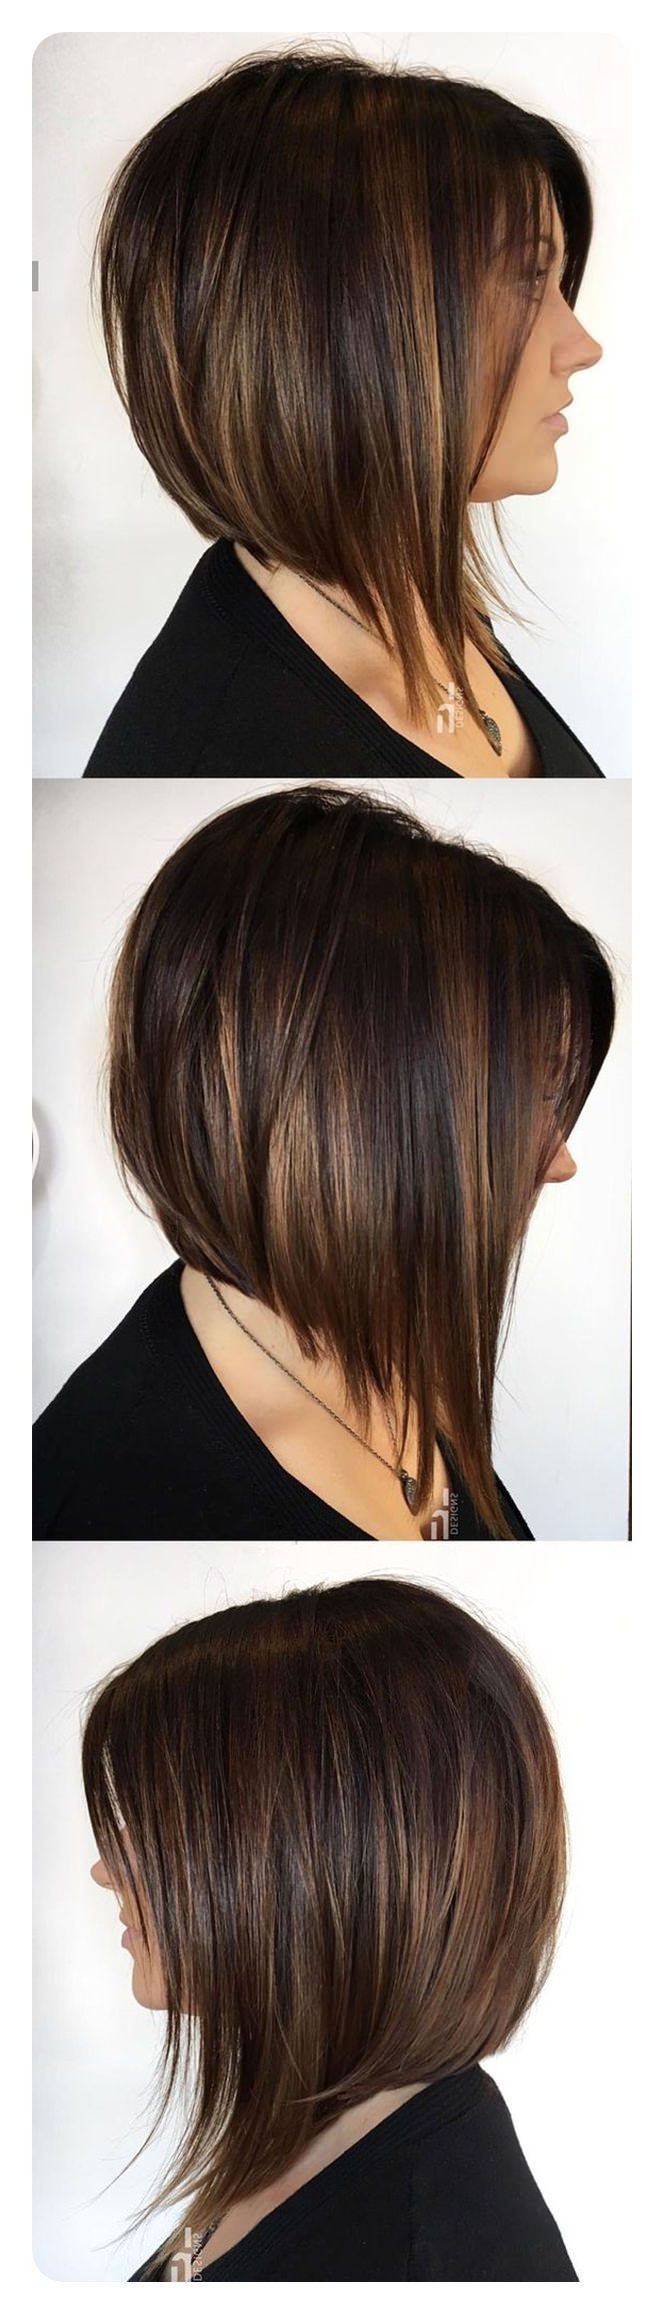 The Bob Cut Craze: 88 Ways To Vamp Your Inverted Bob Intended For Short Sliced Metallic Blonde Bob Hairstyles (View 20 of 20)